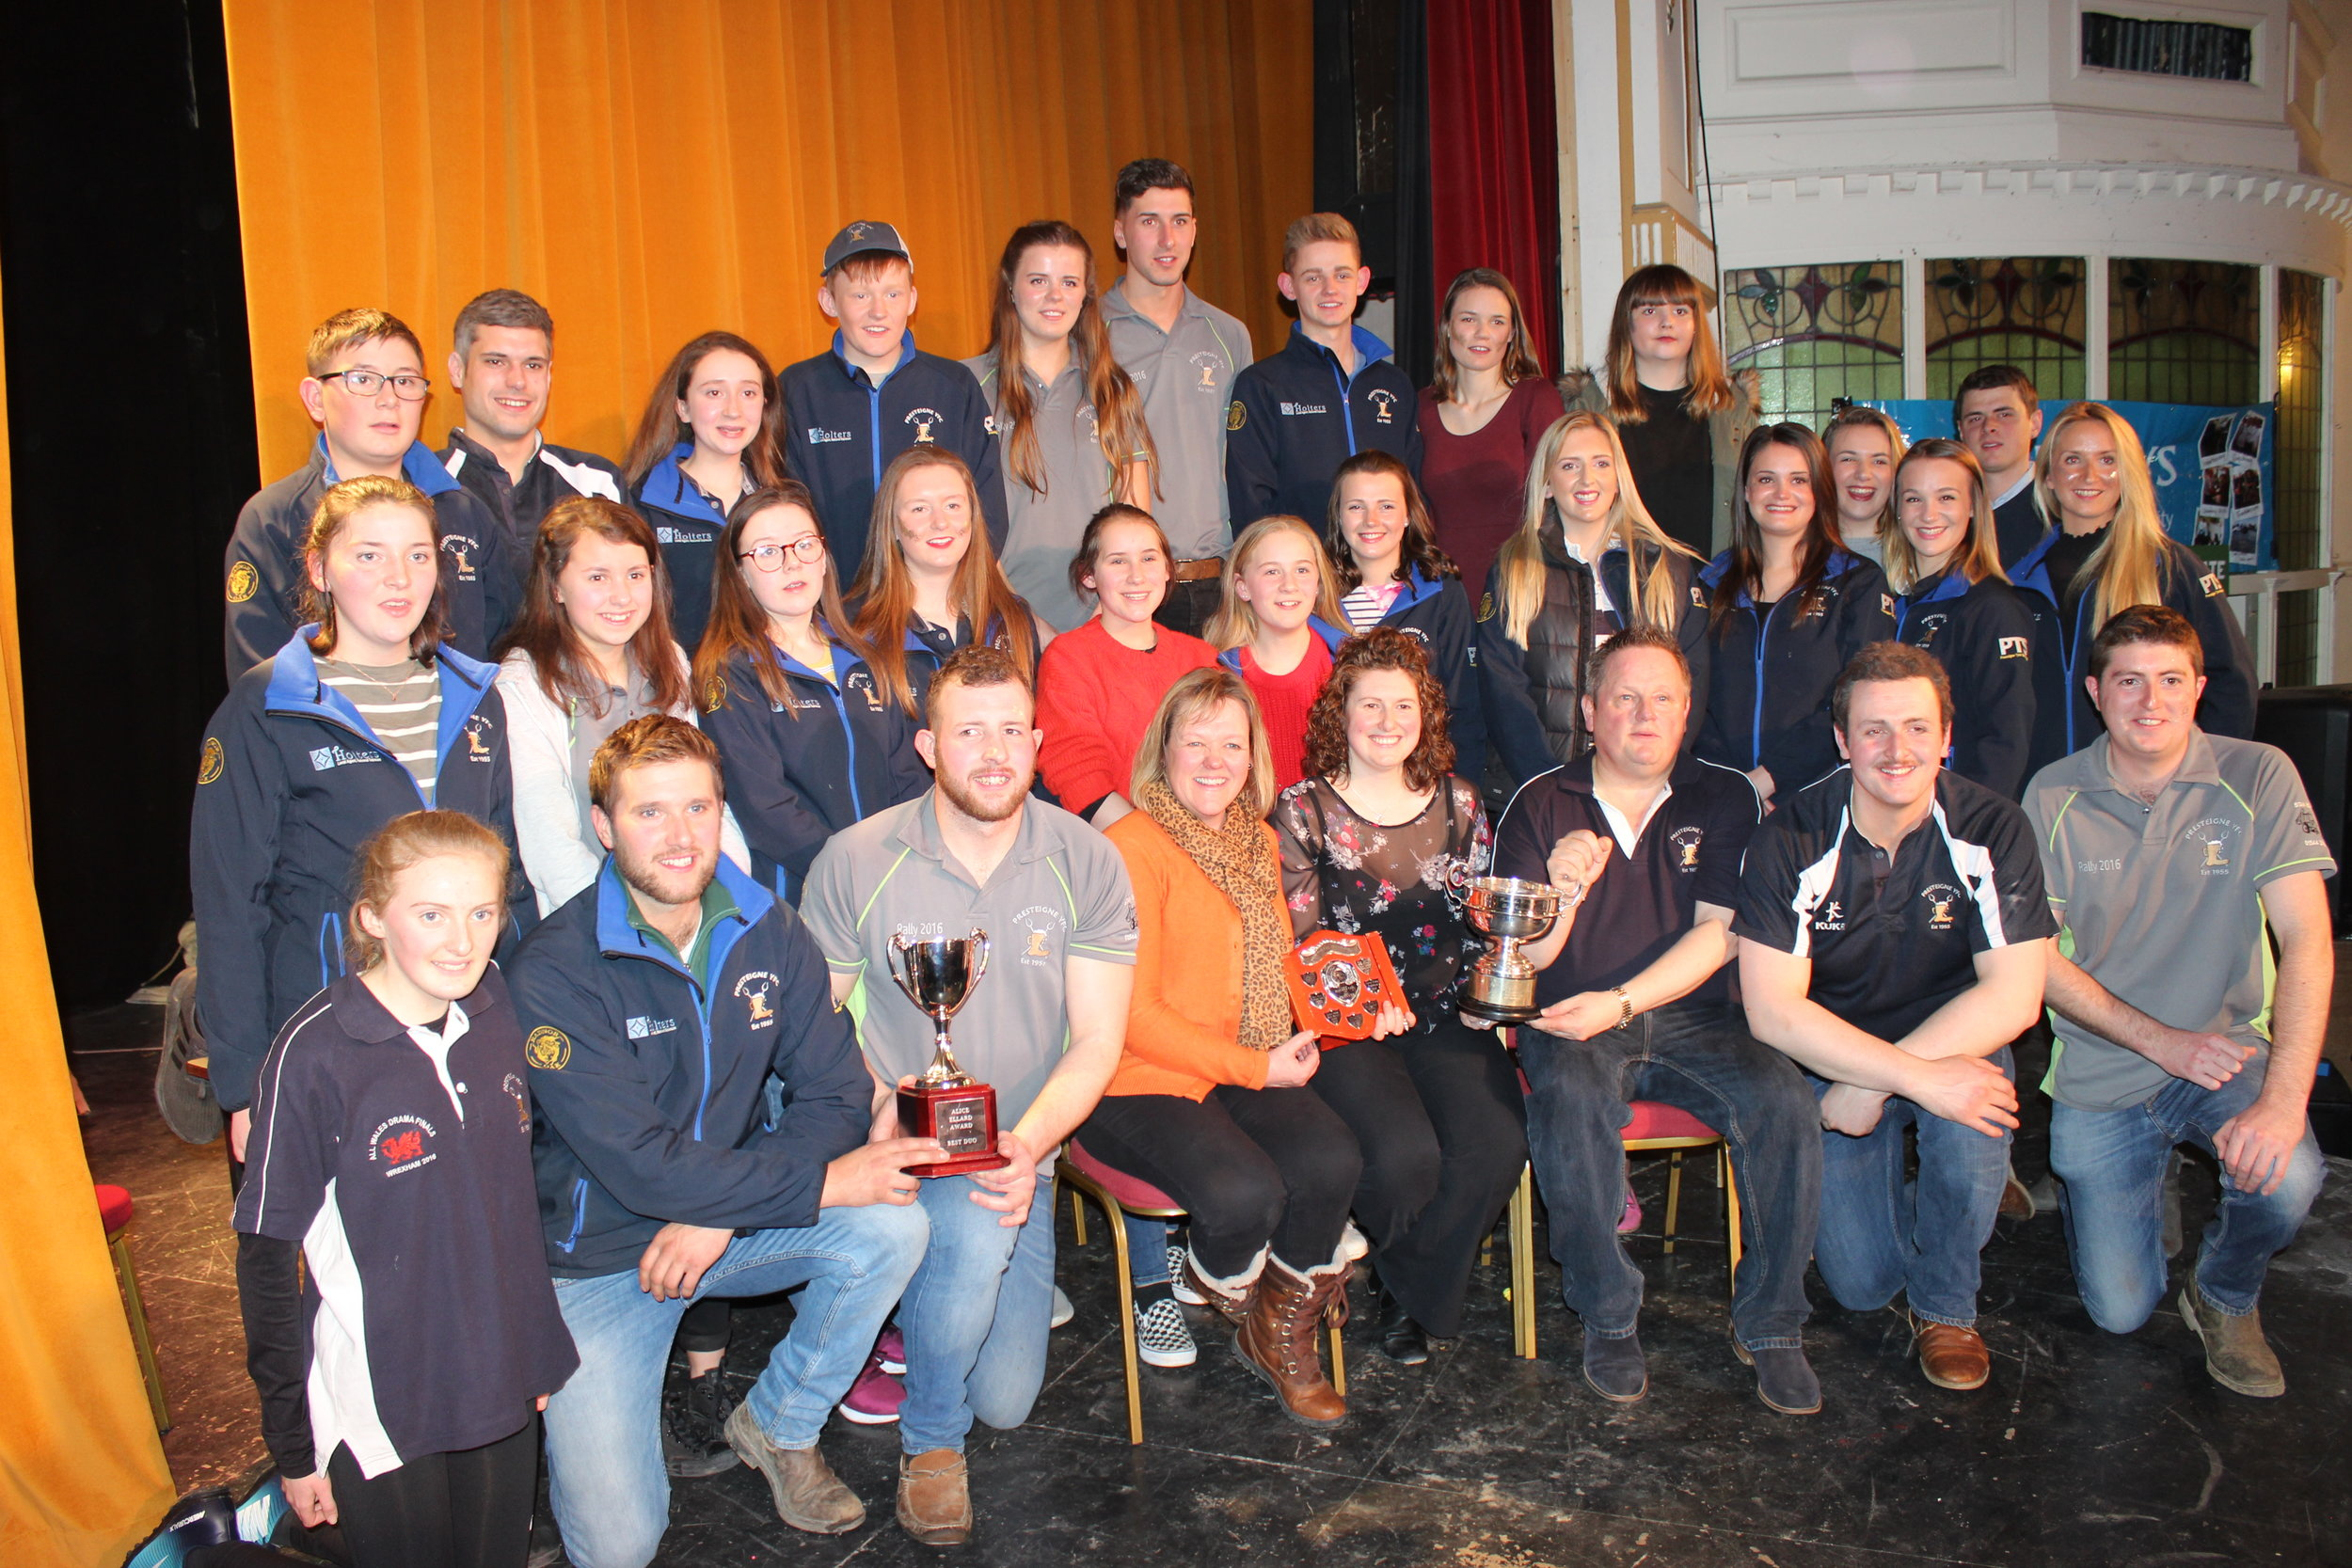 Presteigne YFC winners of the 2018 Pantomime Competition